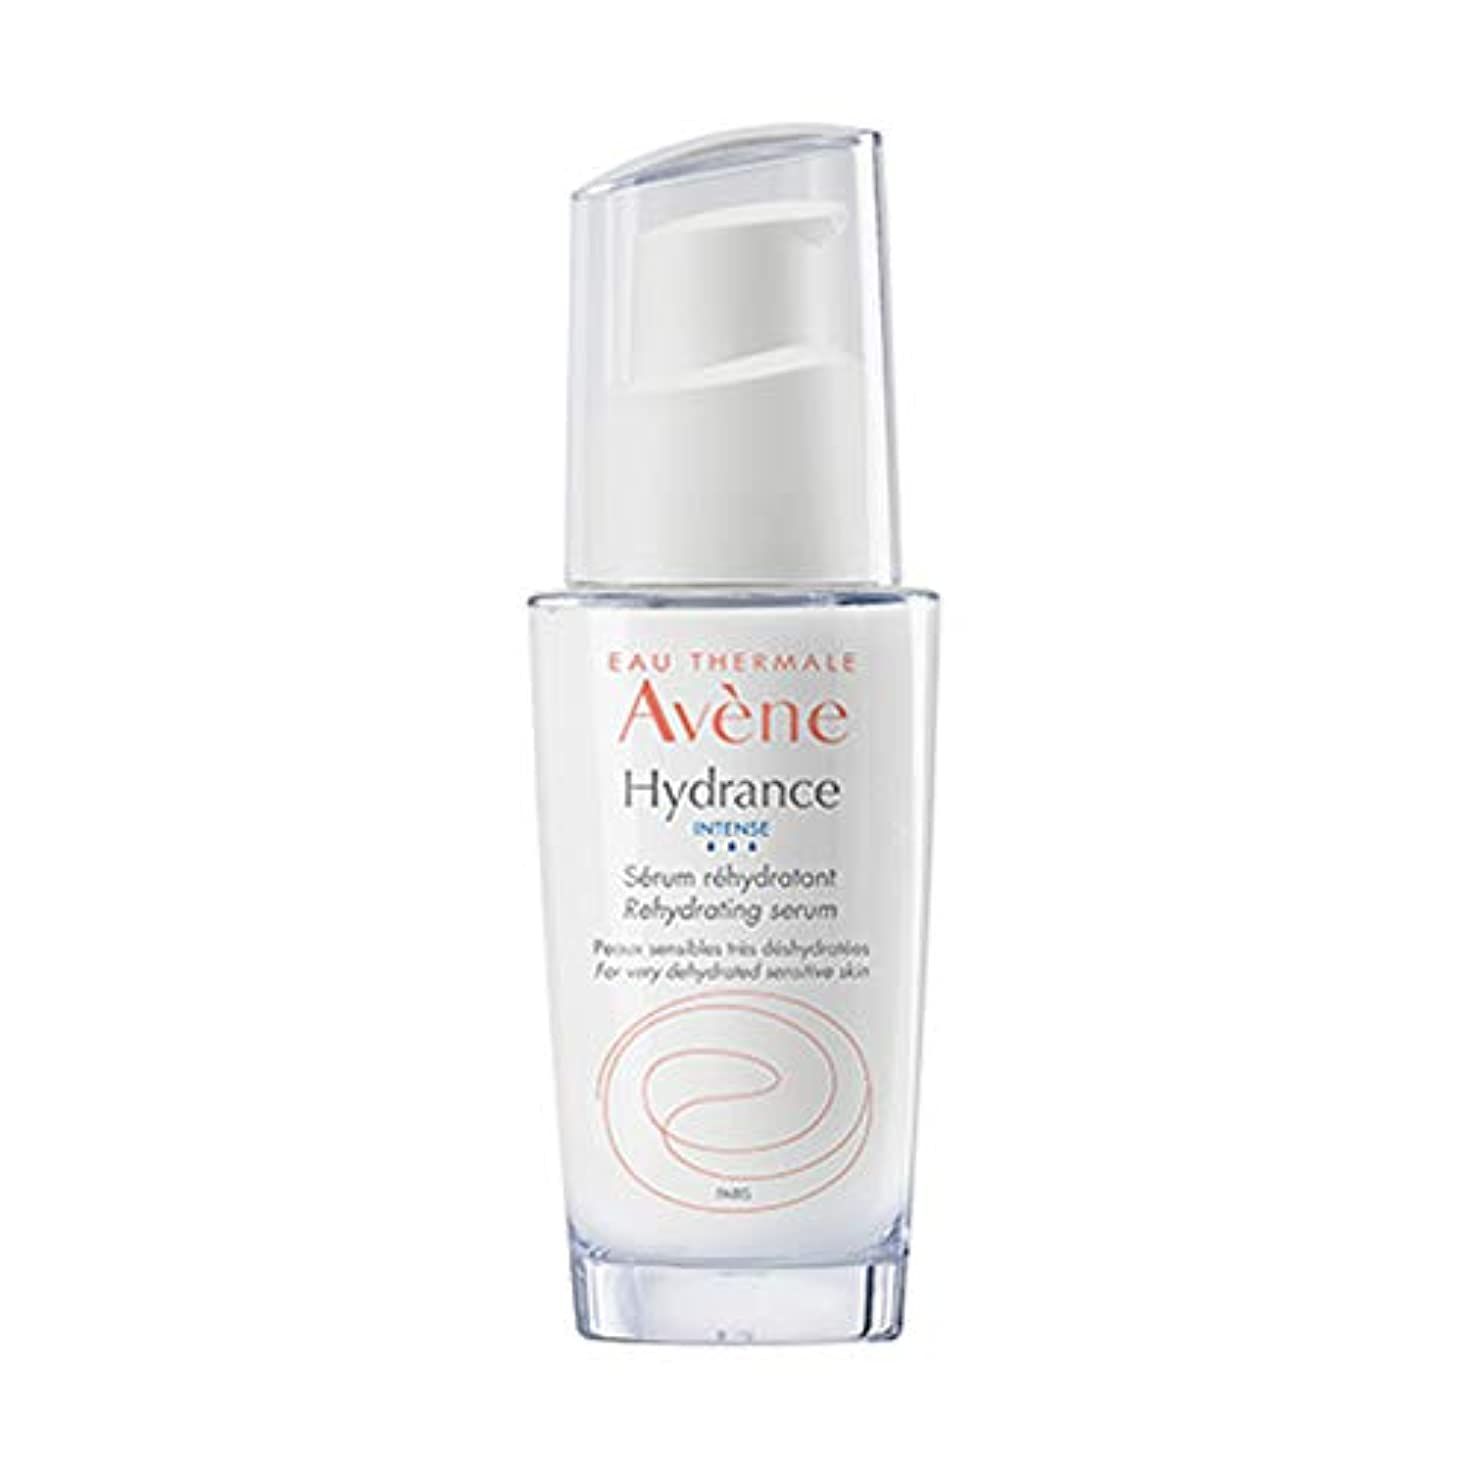 操る聖なる毒液アベンヌ Hydrance Intense Rehydrating Serum - For Very Dehydrated Sensitive Skin 30ml/1oz並行輸入品